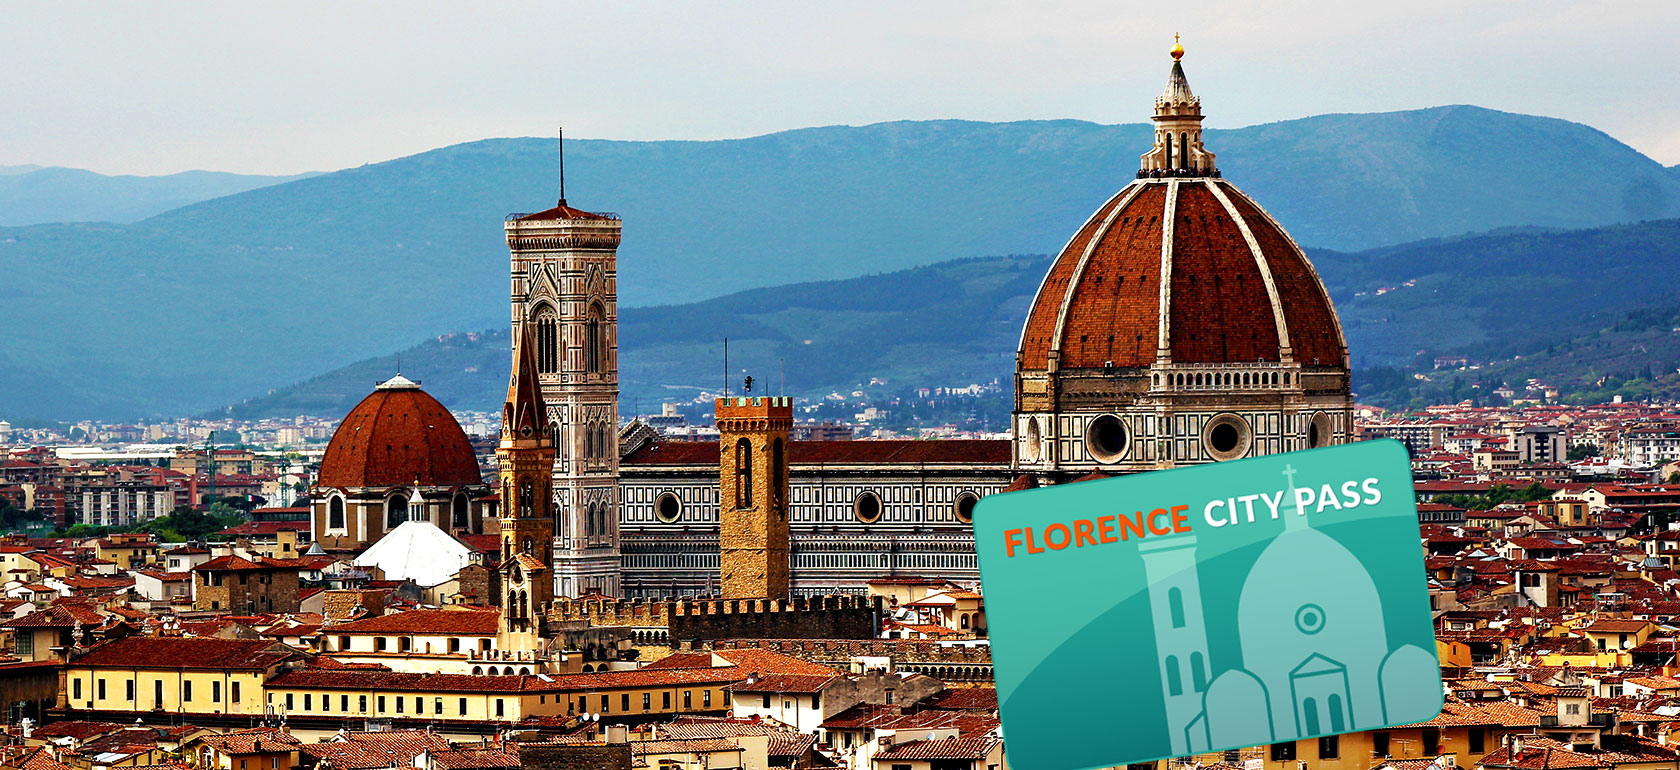 Florenz City Pass